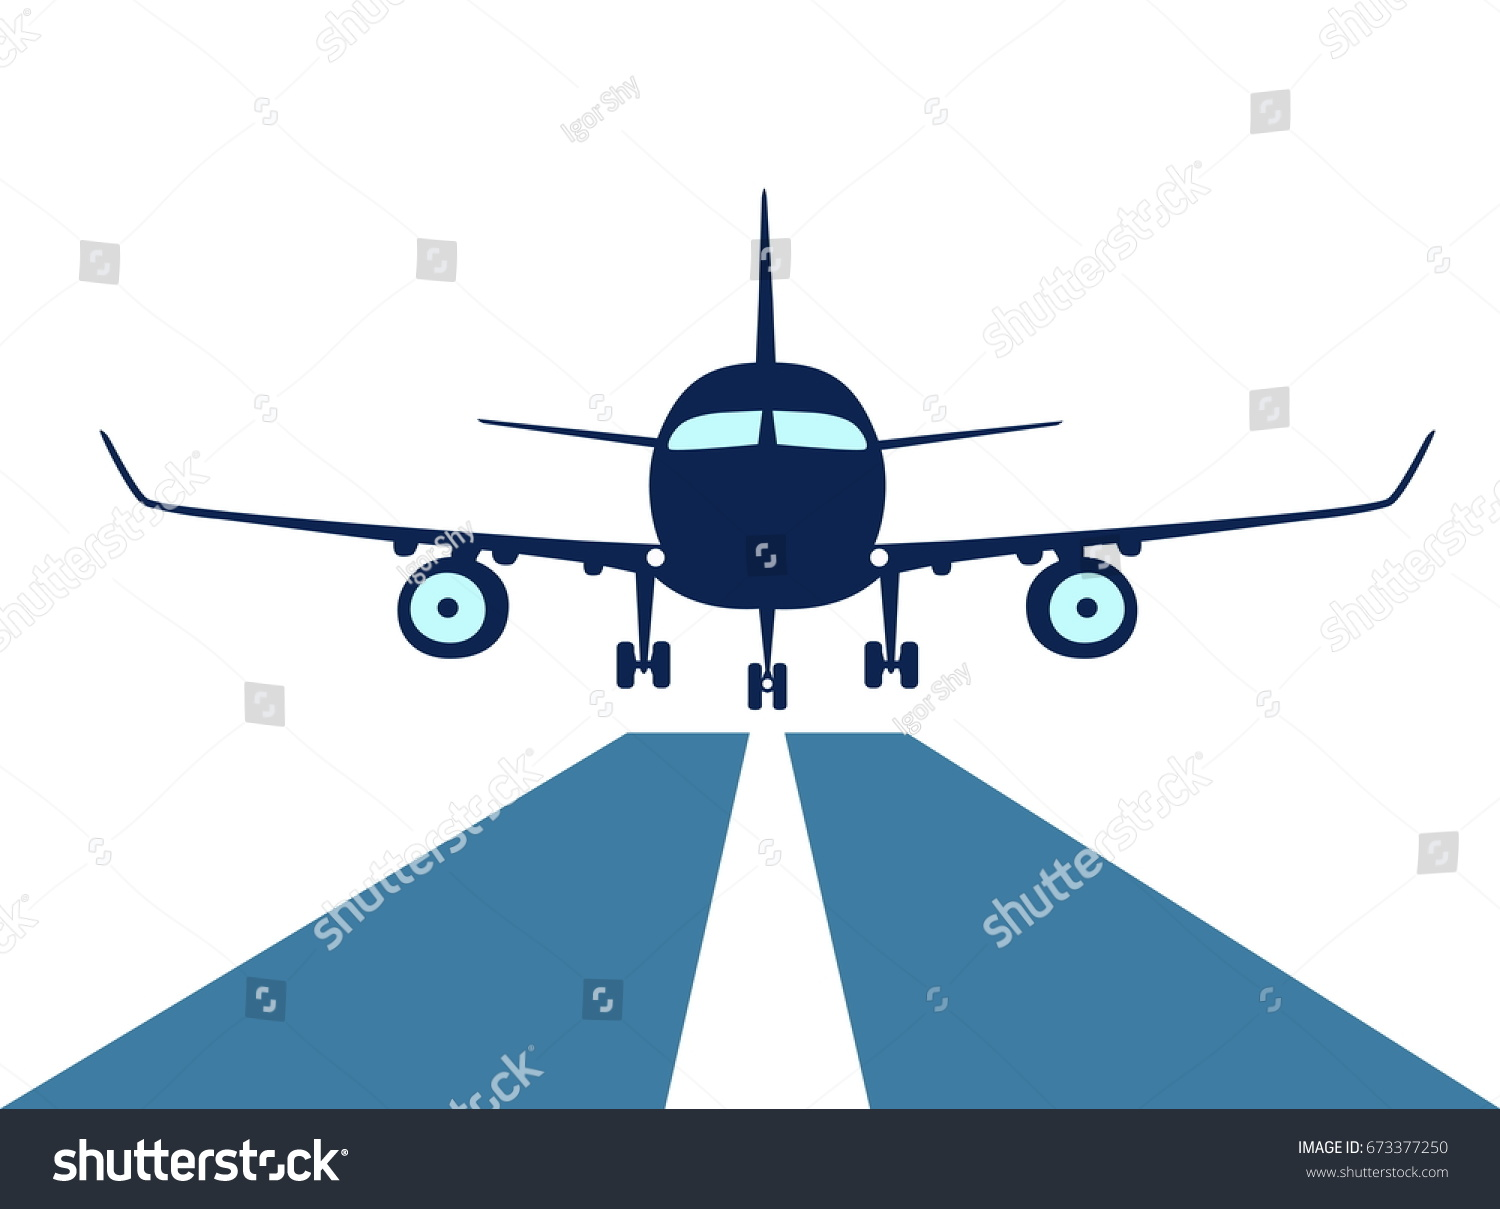 Airplane make good landing excellent approach stock illustration airplane make good landing with a excellent approach to runway symbol of the proper attitude buycottarizona Gallery